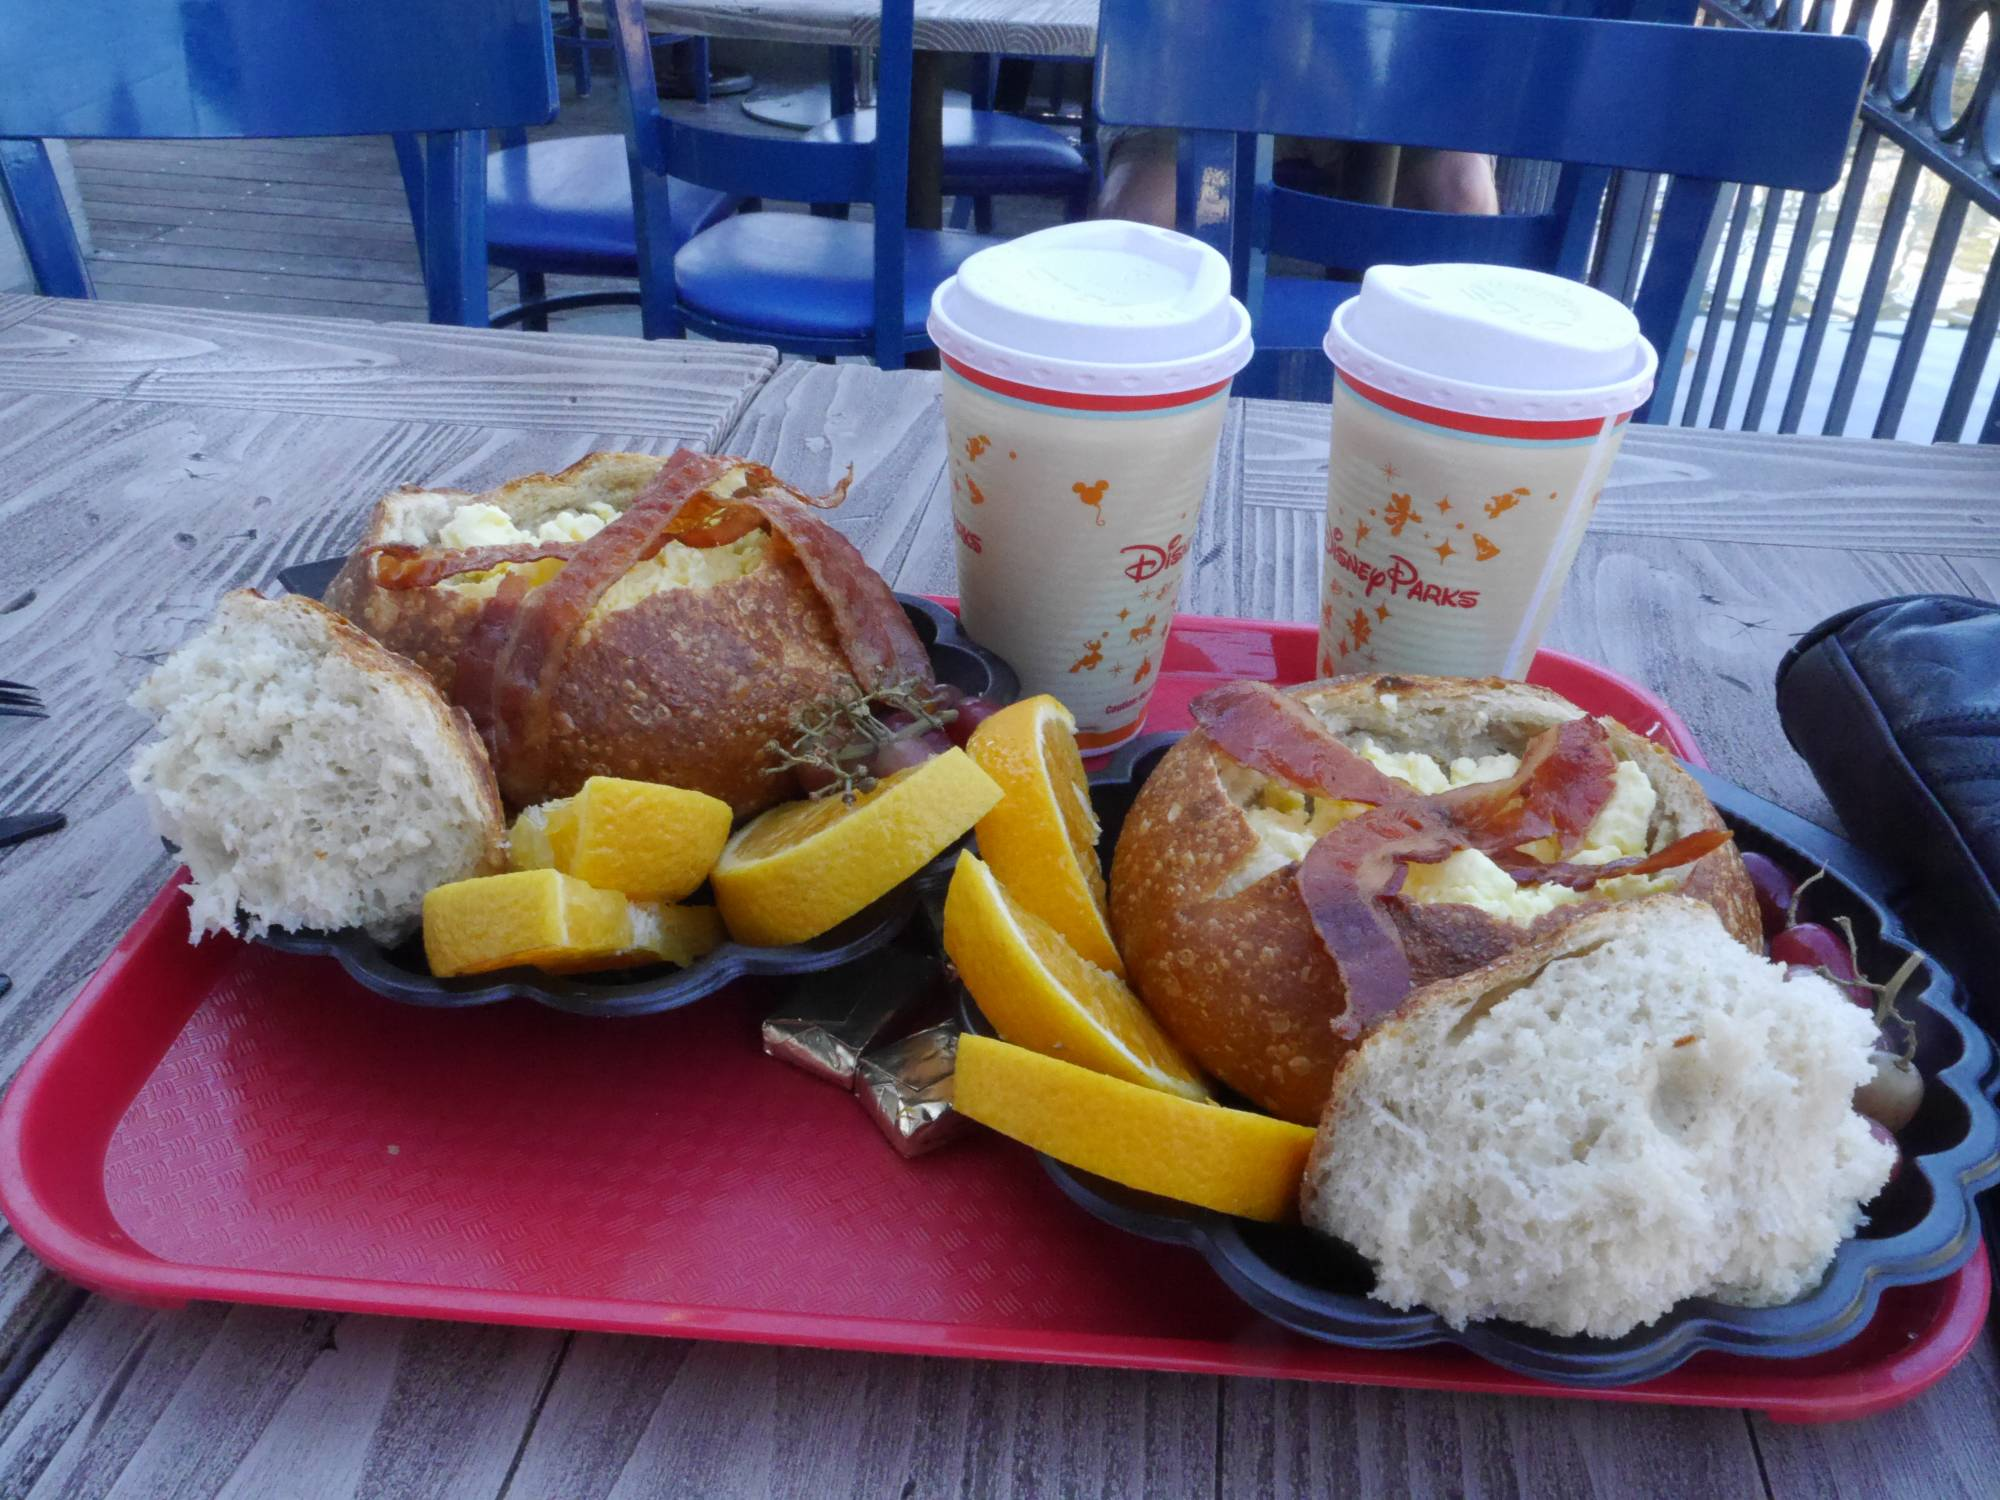 Enjoy delicious breakfast options at both Walt Disney World and Disneyland |PassPorter.com